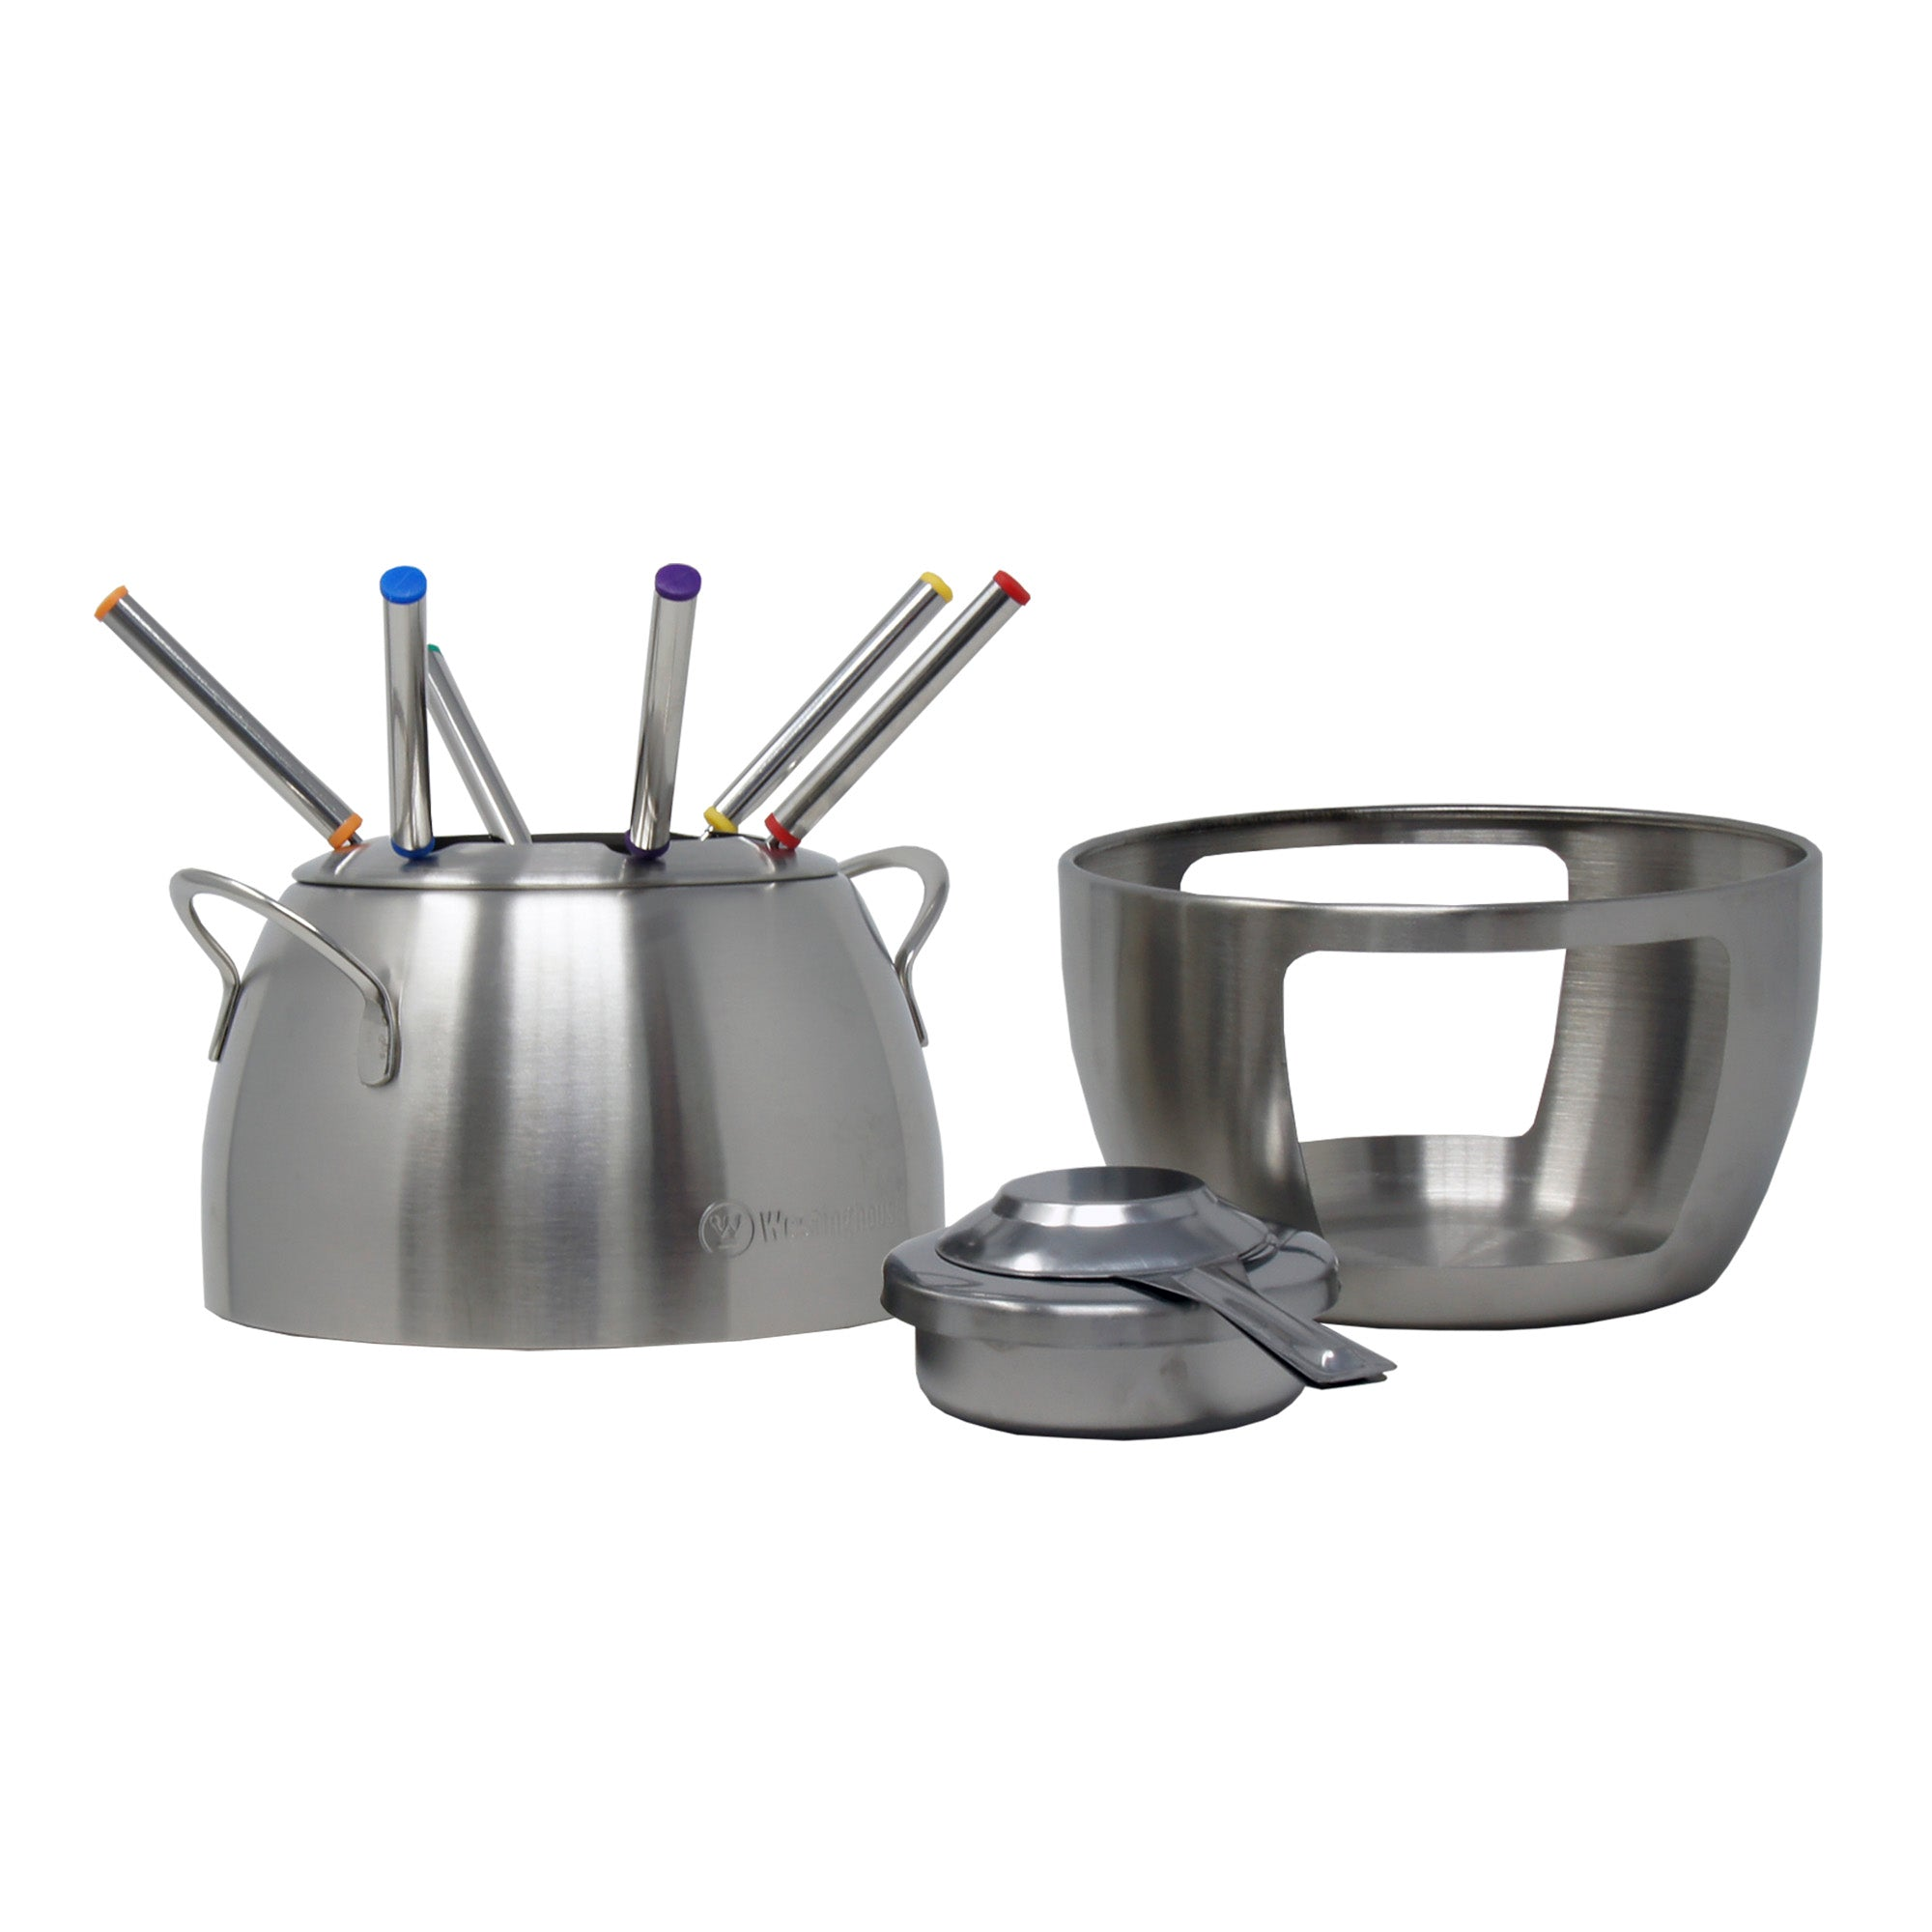 Set para Fondue de Acero Inoxidable con 6 Tenedores de Distintos Colores